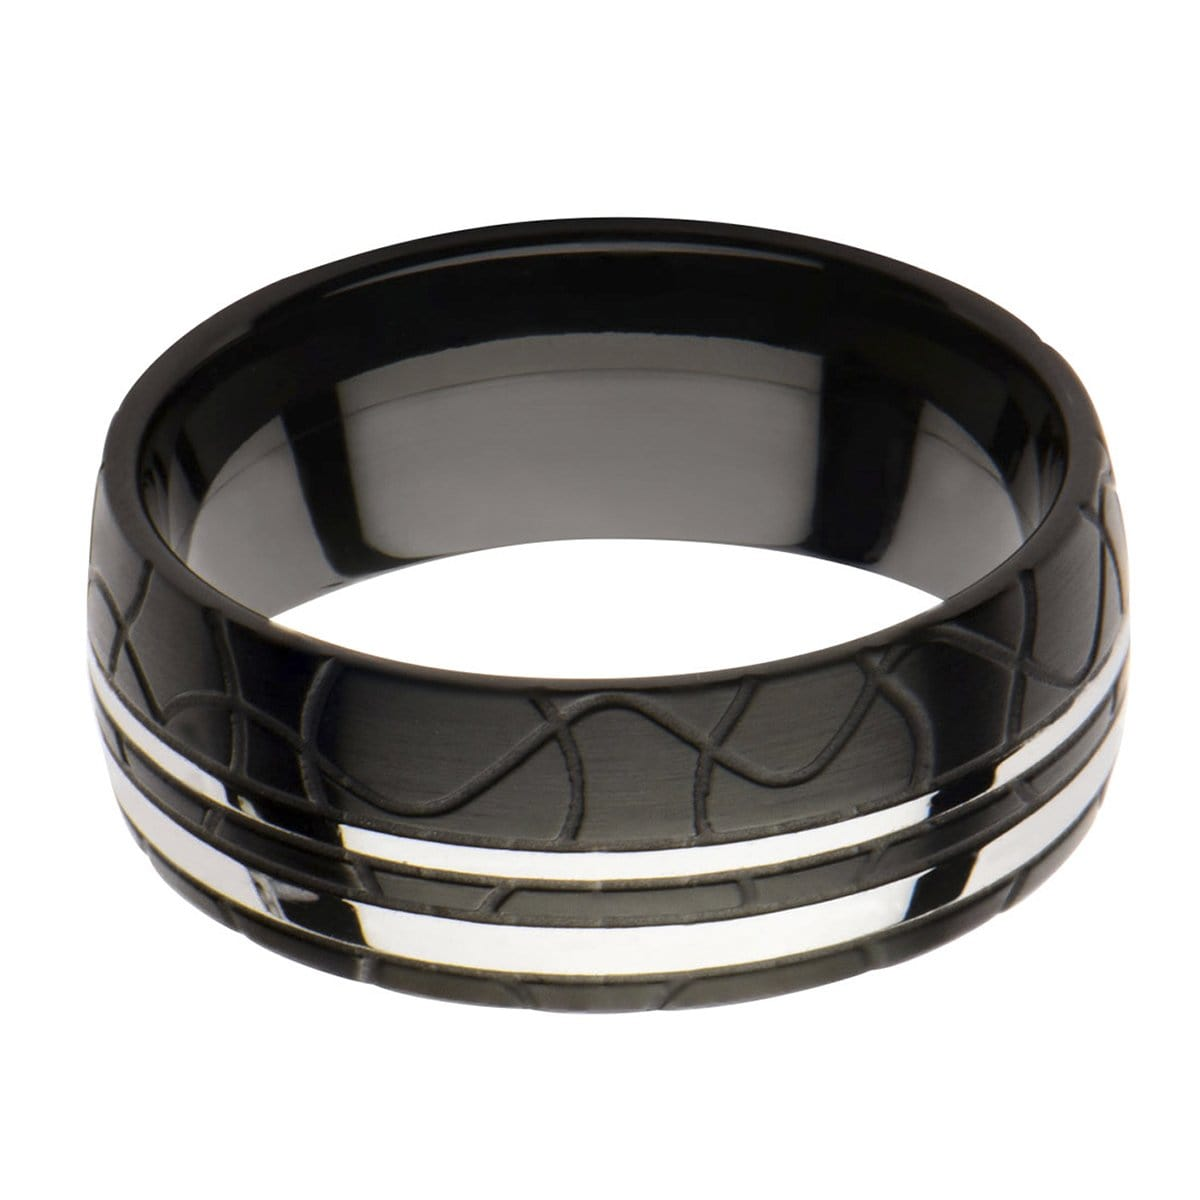 Black & Silver Stainless Steel Jigsaw Patterned Band Rings